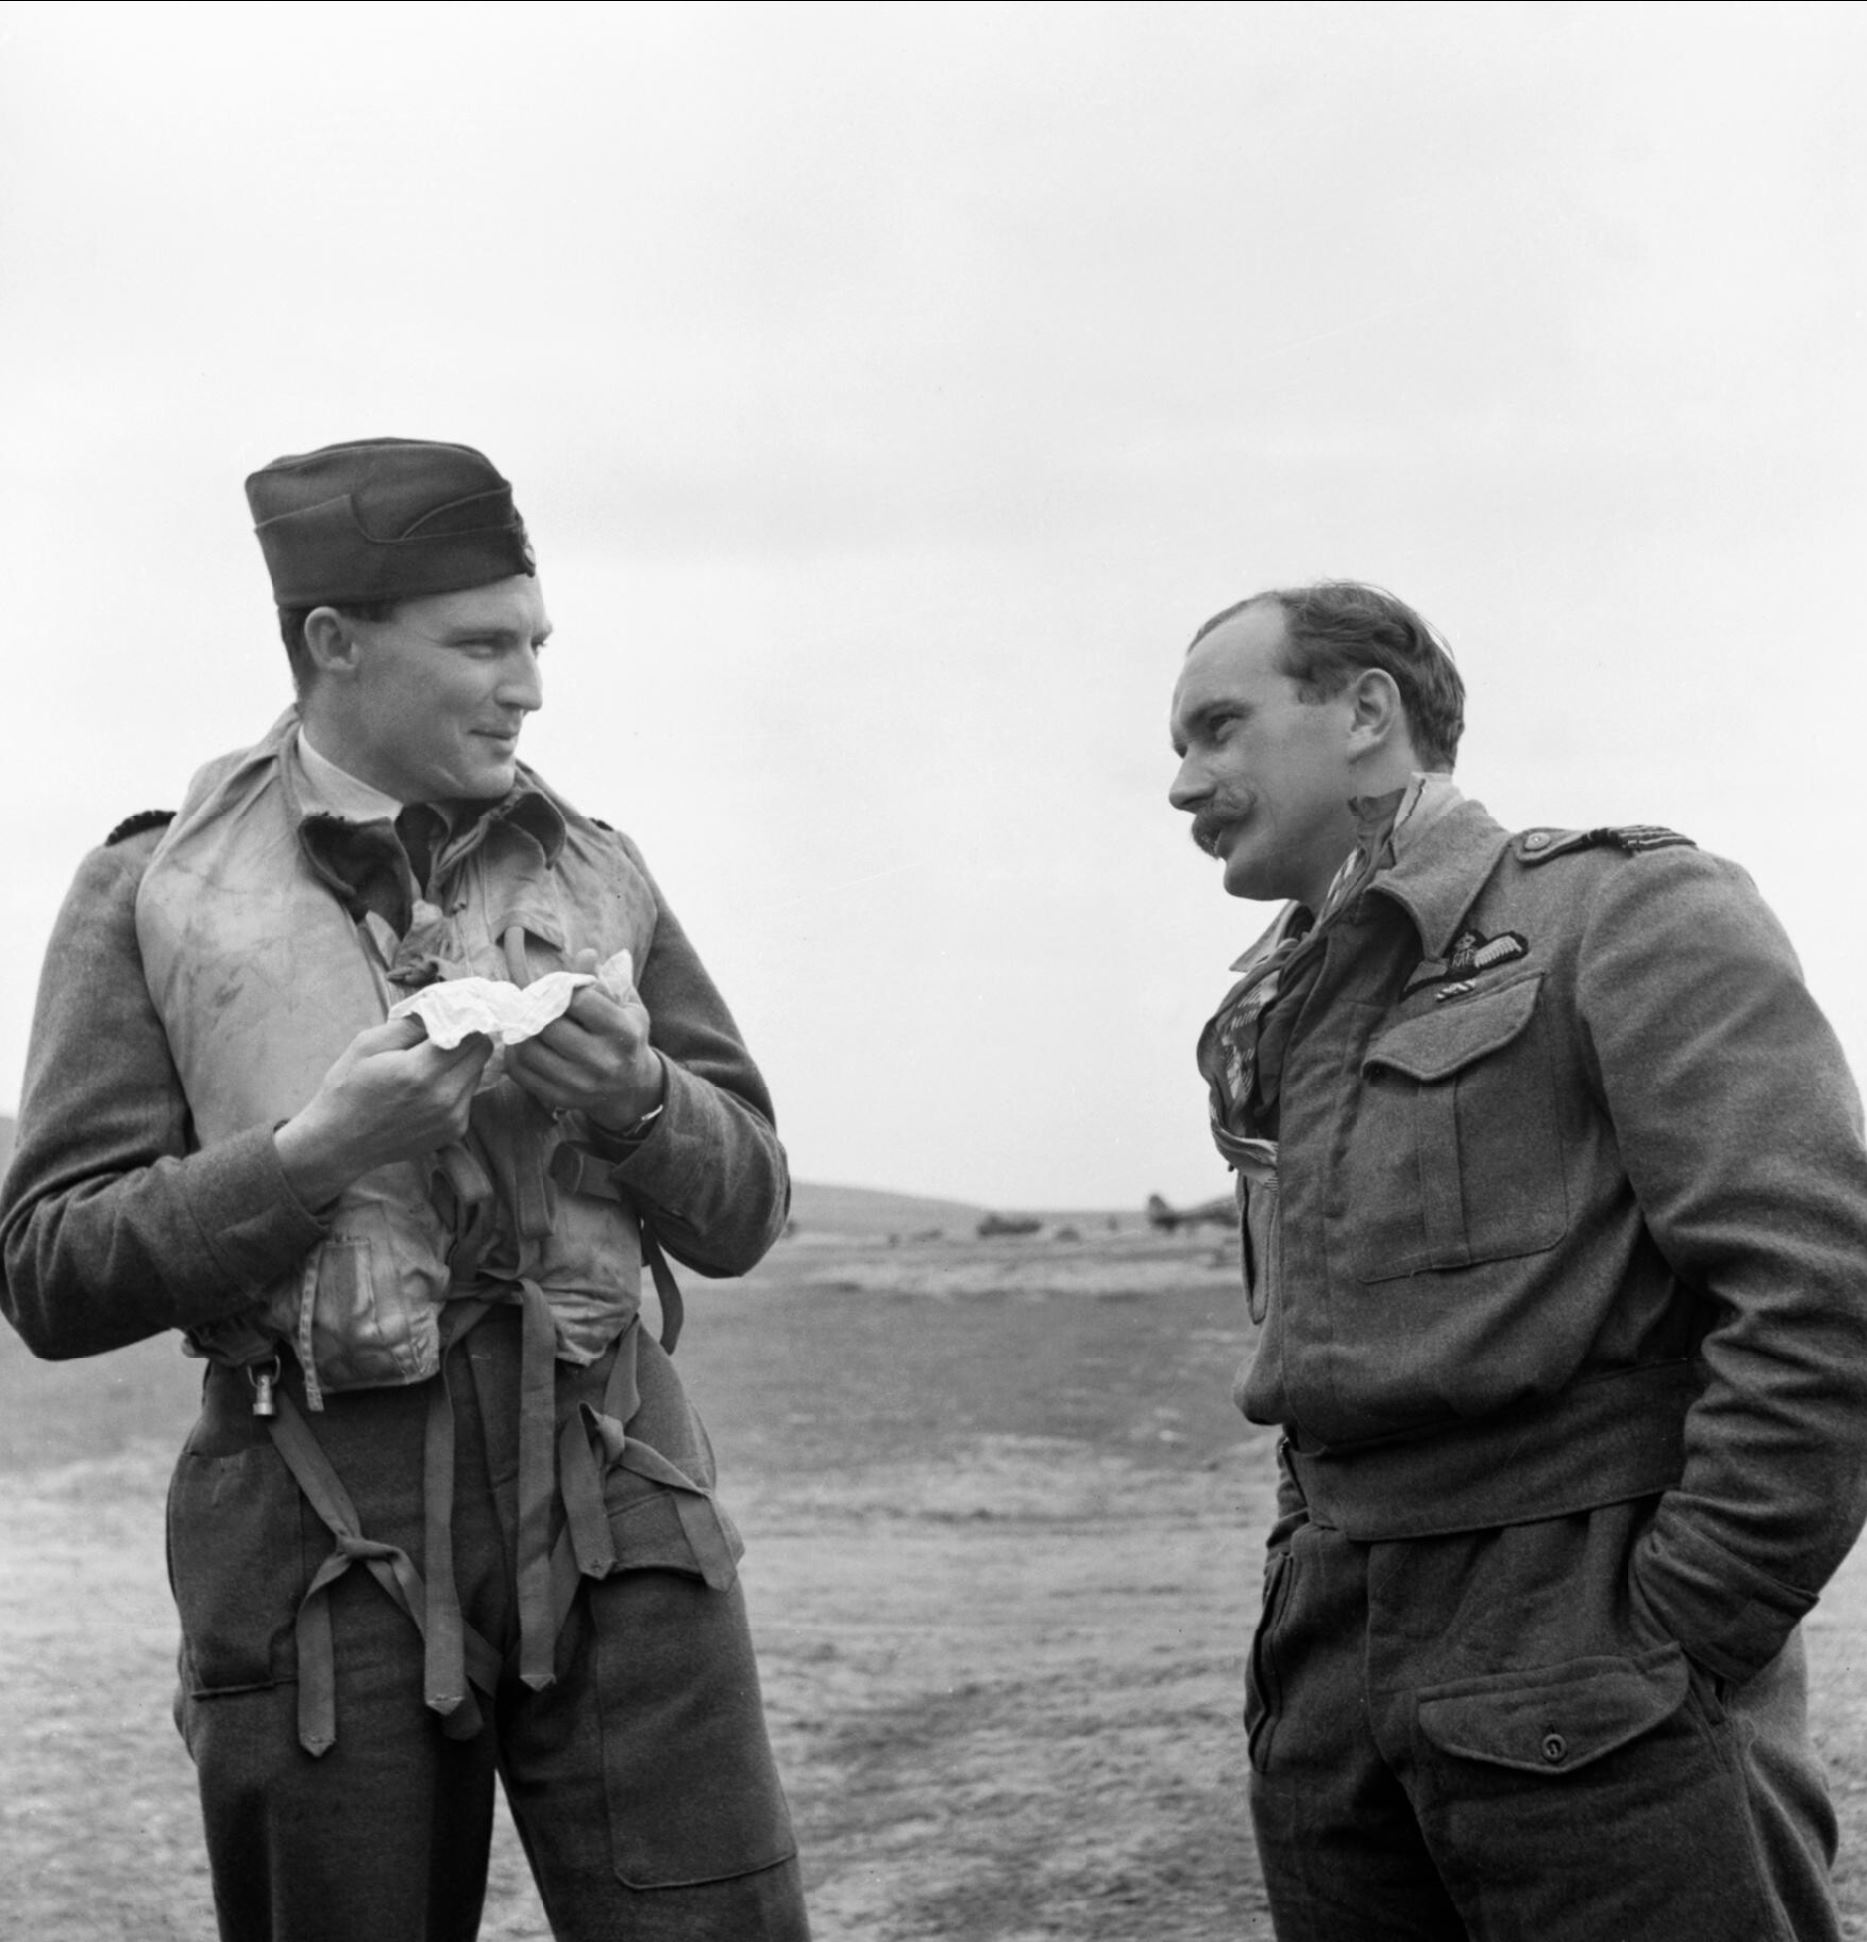 Aircrew RAF 322 Wing Group Capt PH Hugo and Wing Commander R Berry IWM CNA282